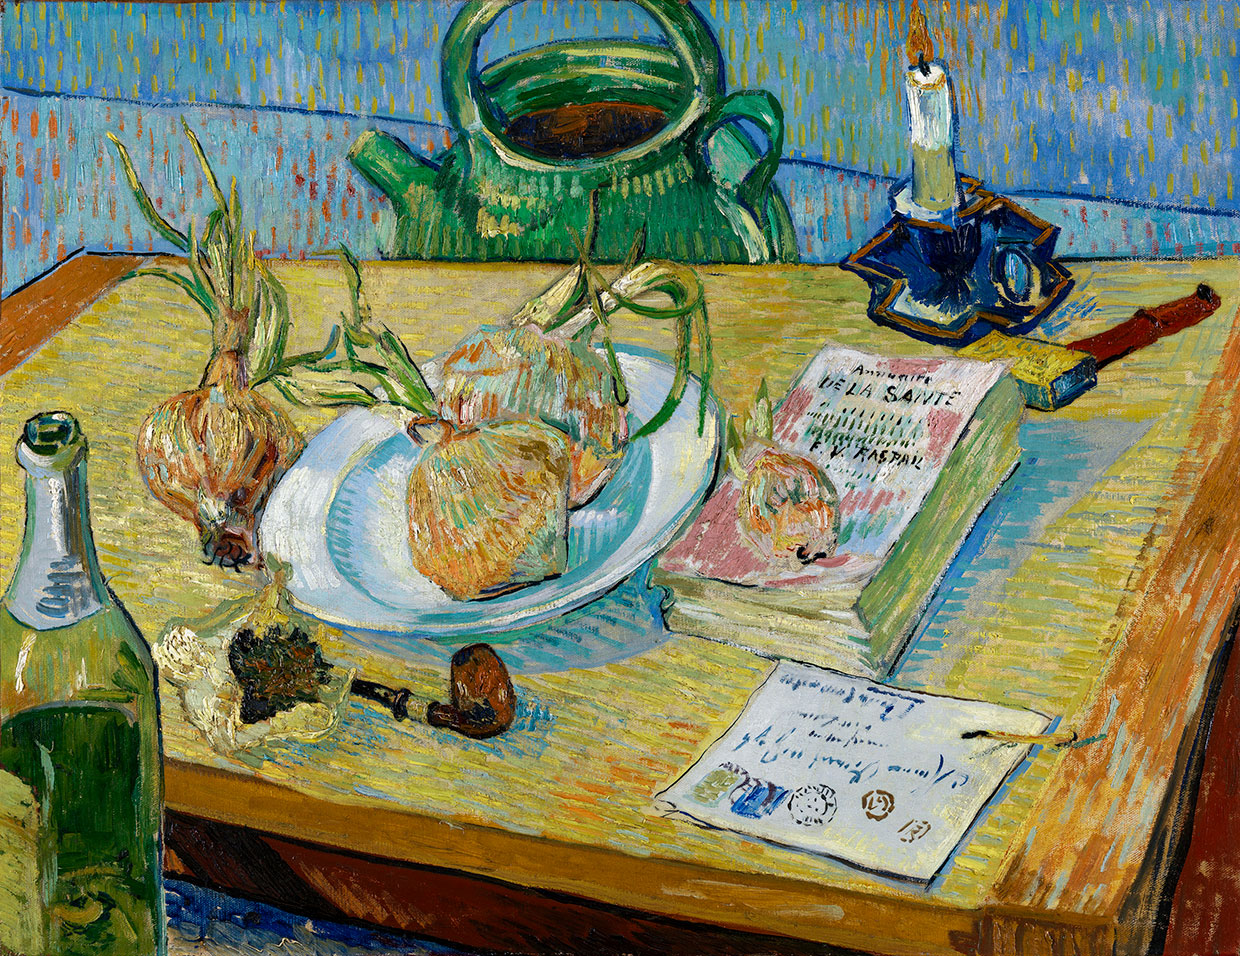 Vincent van Gogh, Still-life with a plate of onions, 1889. Coll. Kröller-Müller Museum, Otterlo